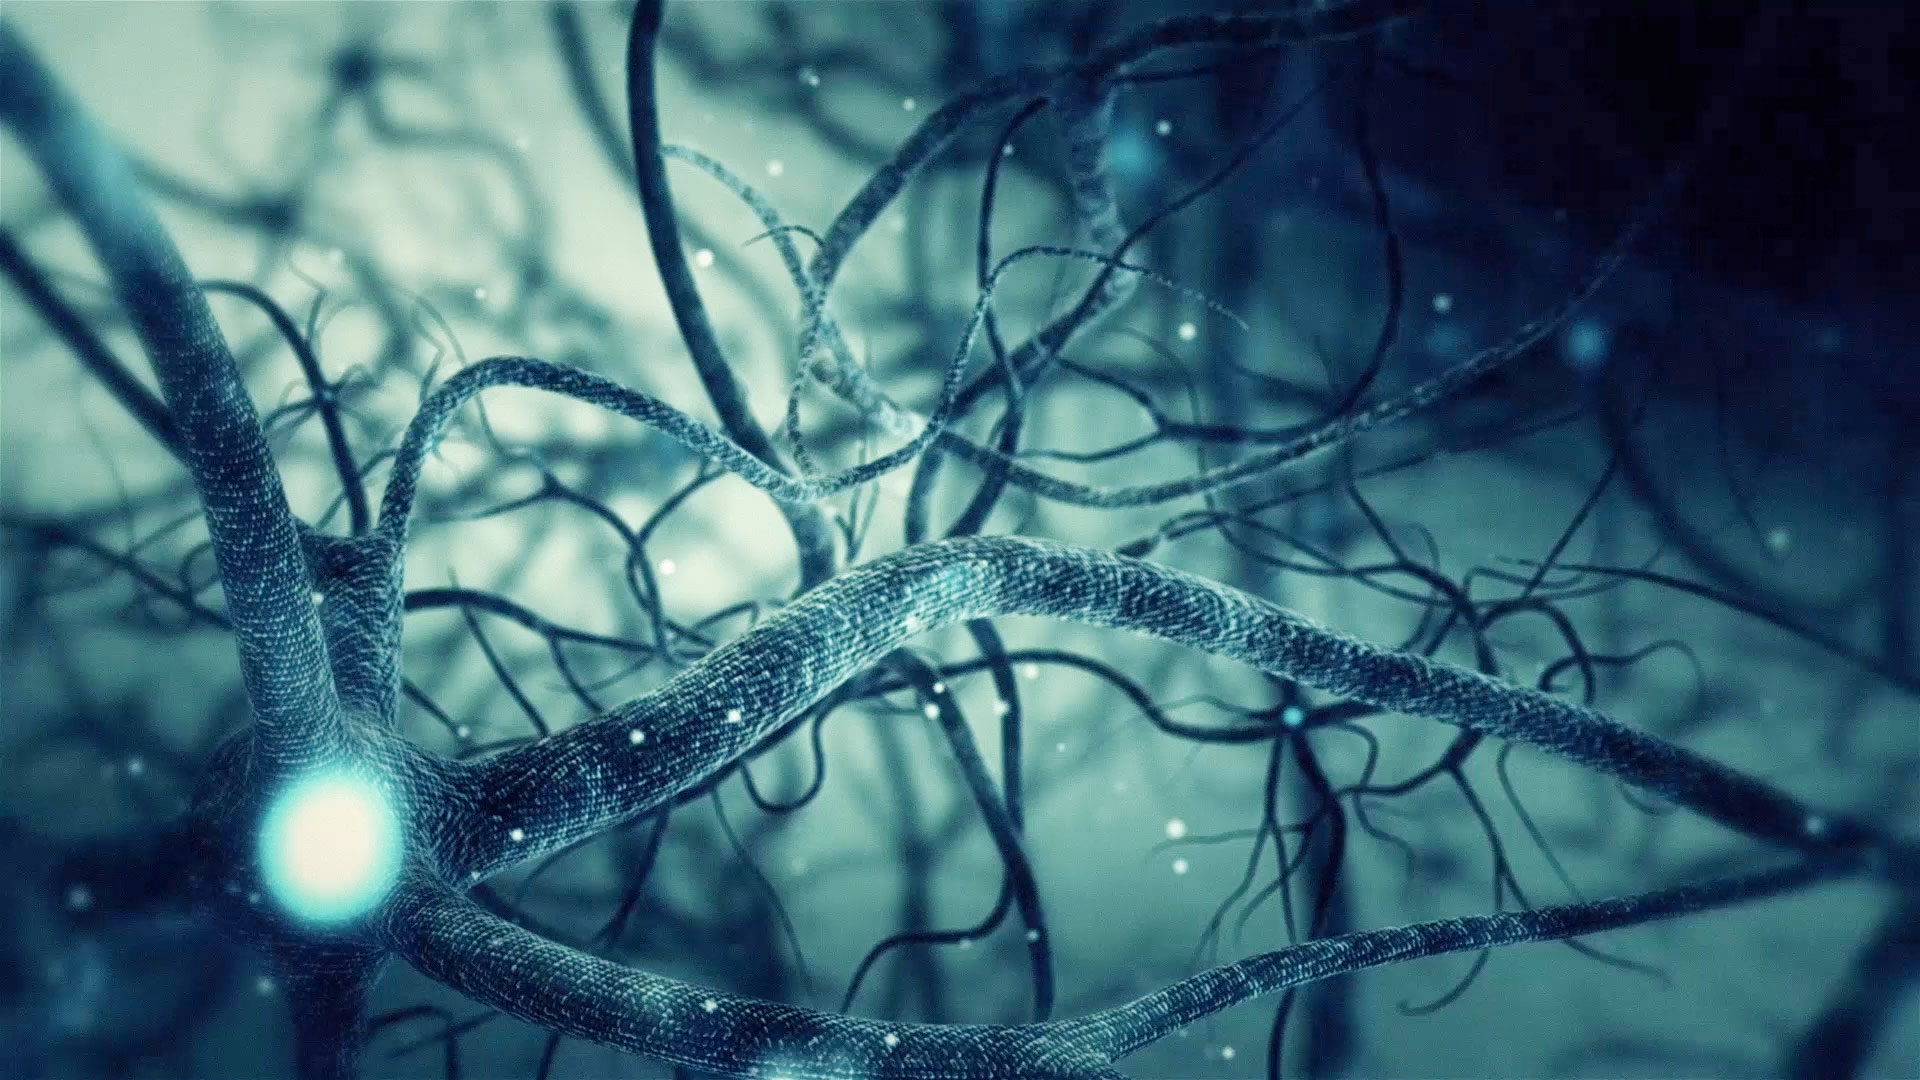 3d Moving Animation Wallpaper Download Green Neuron Synapse Network 3d Animation Infinite Loop